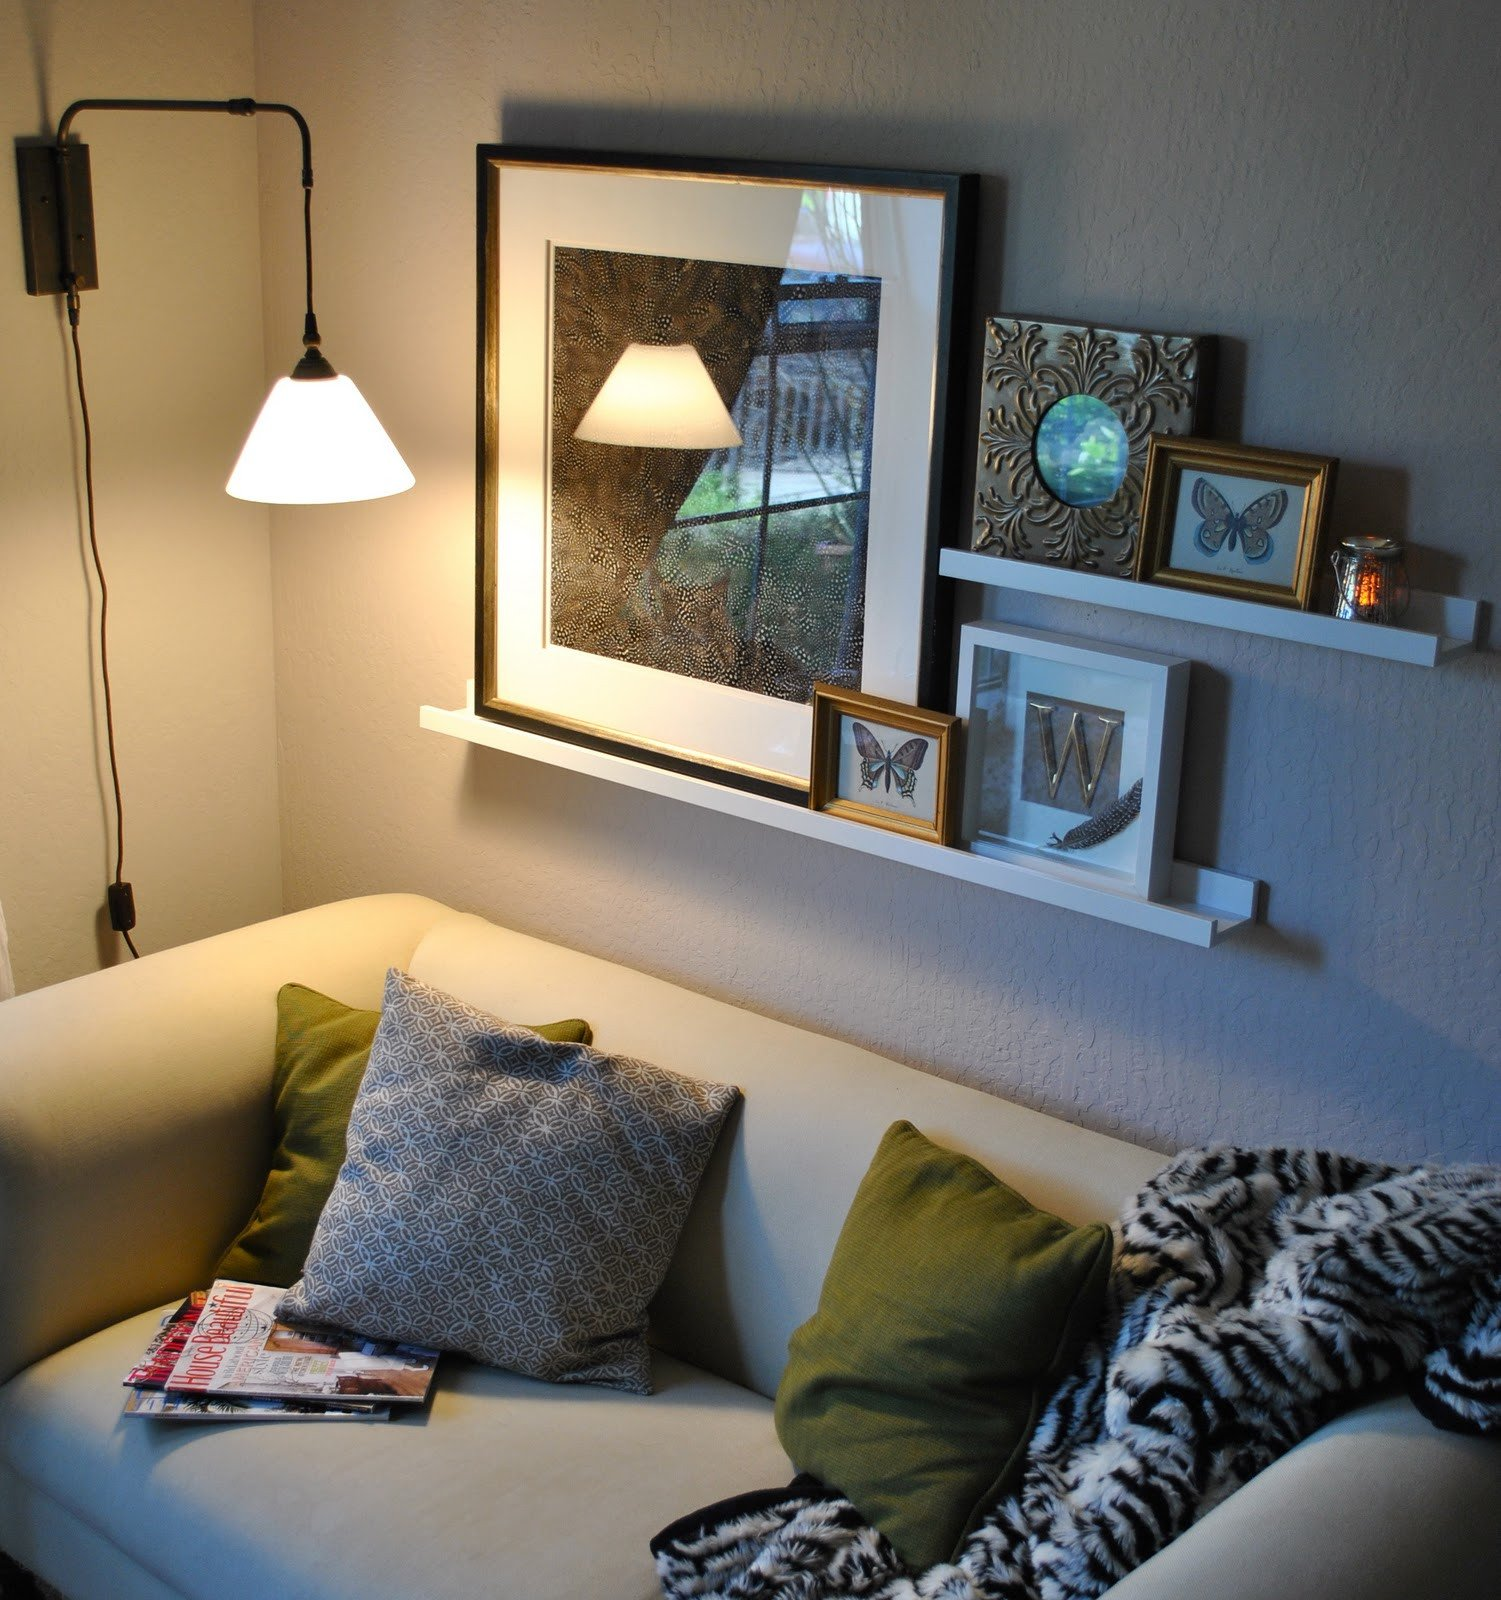 Living Room Ideas Shelves Beautiful Don T Just Sit there Start Spring Cleaning and organize